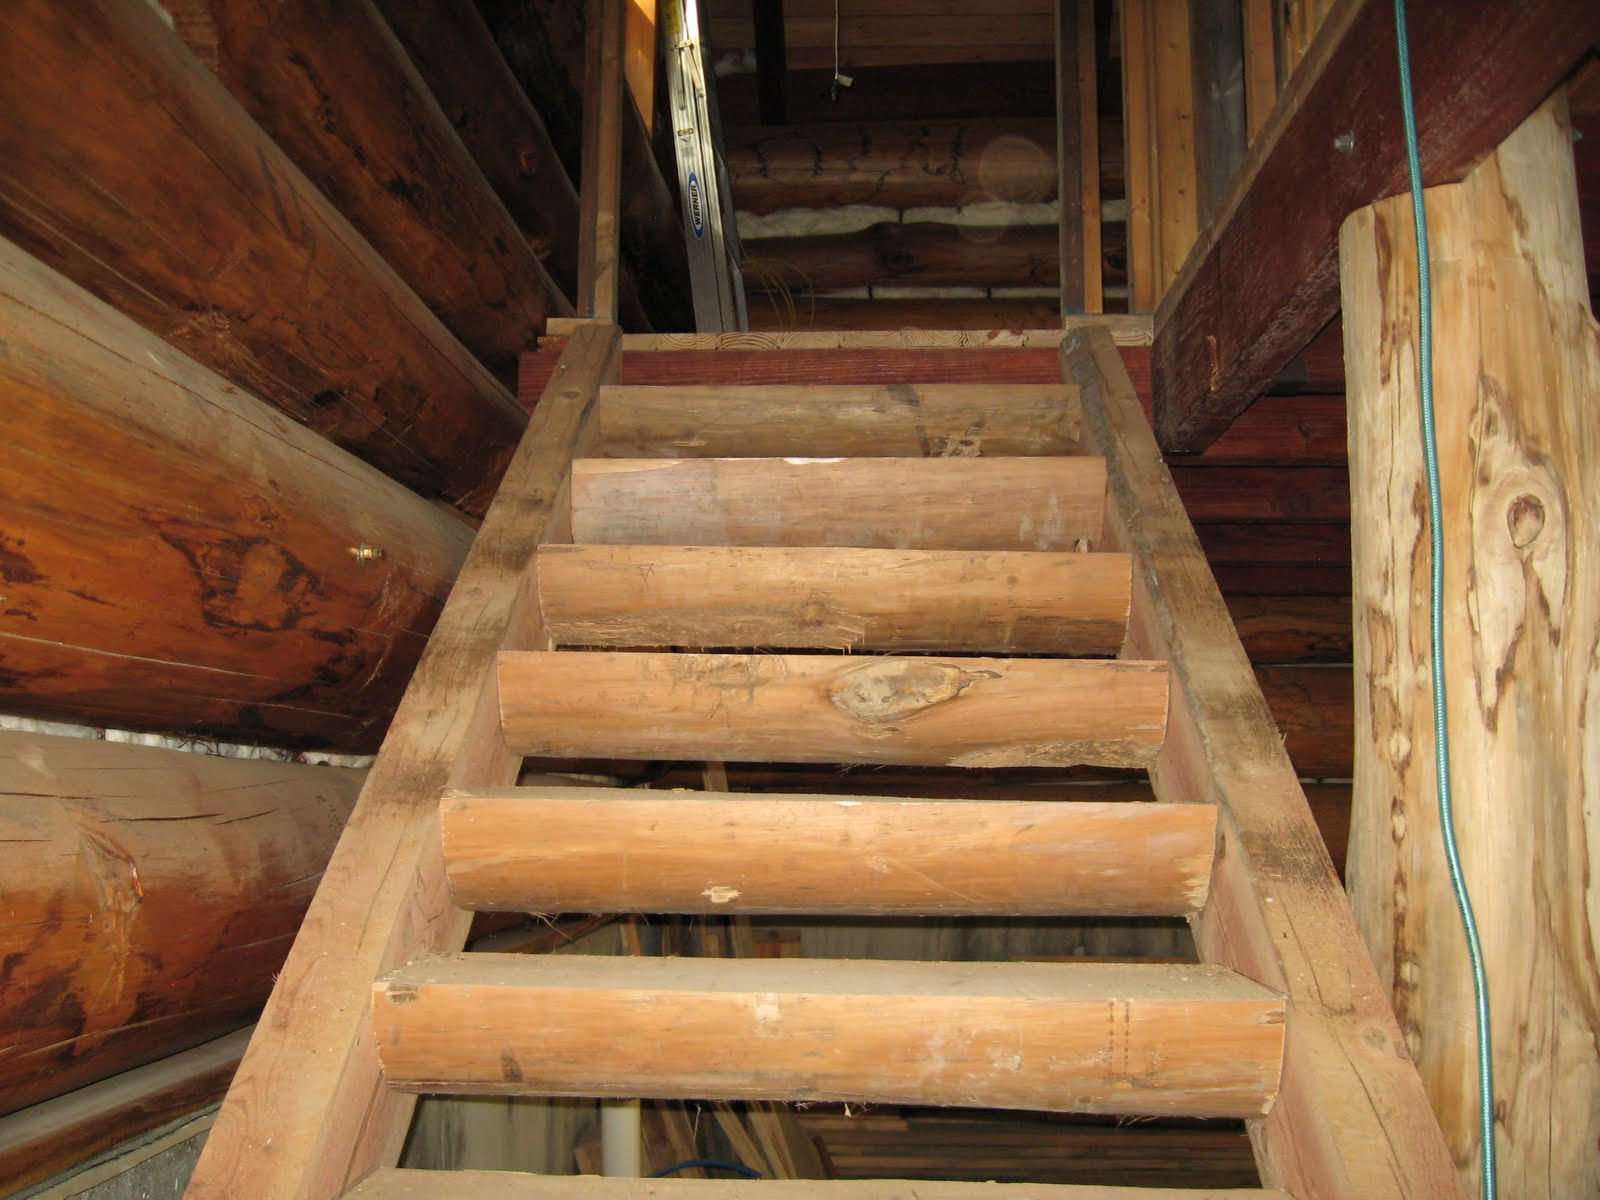 Rachel's Log Home Adventure: A Journey Of Learning To Walk